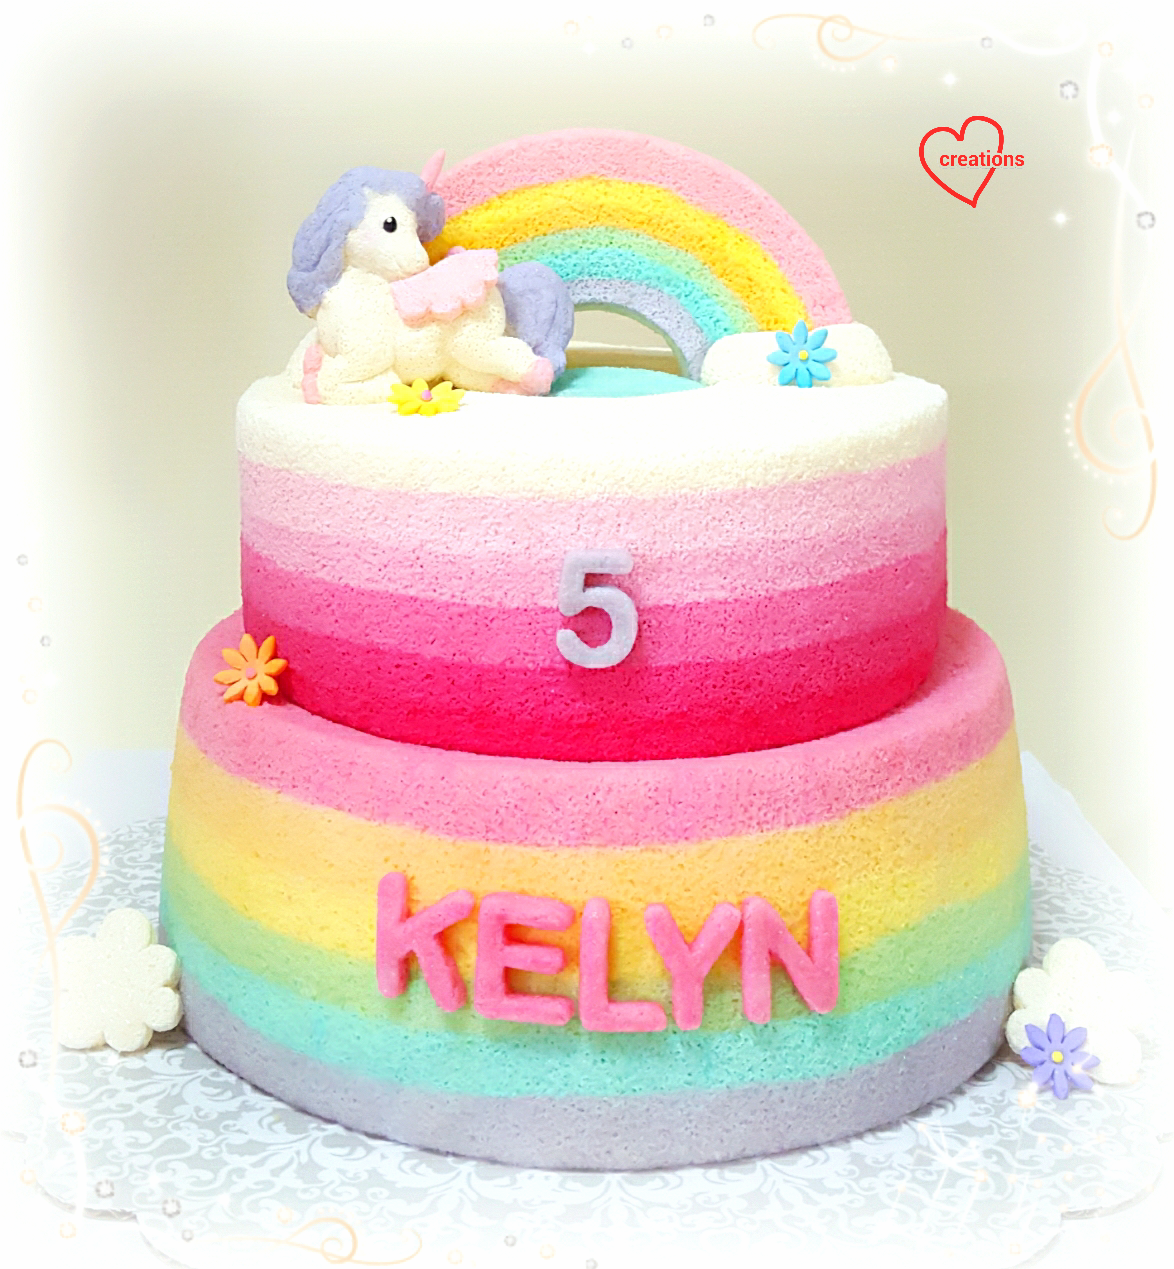 This Is A Sweet Dreamy Creation Combining Pink Ombre Chiffon Cake With Rainbow Topped By And Unicorn